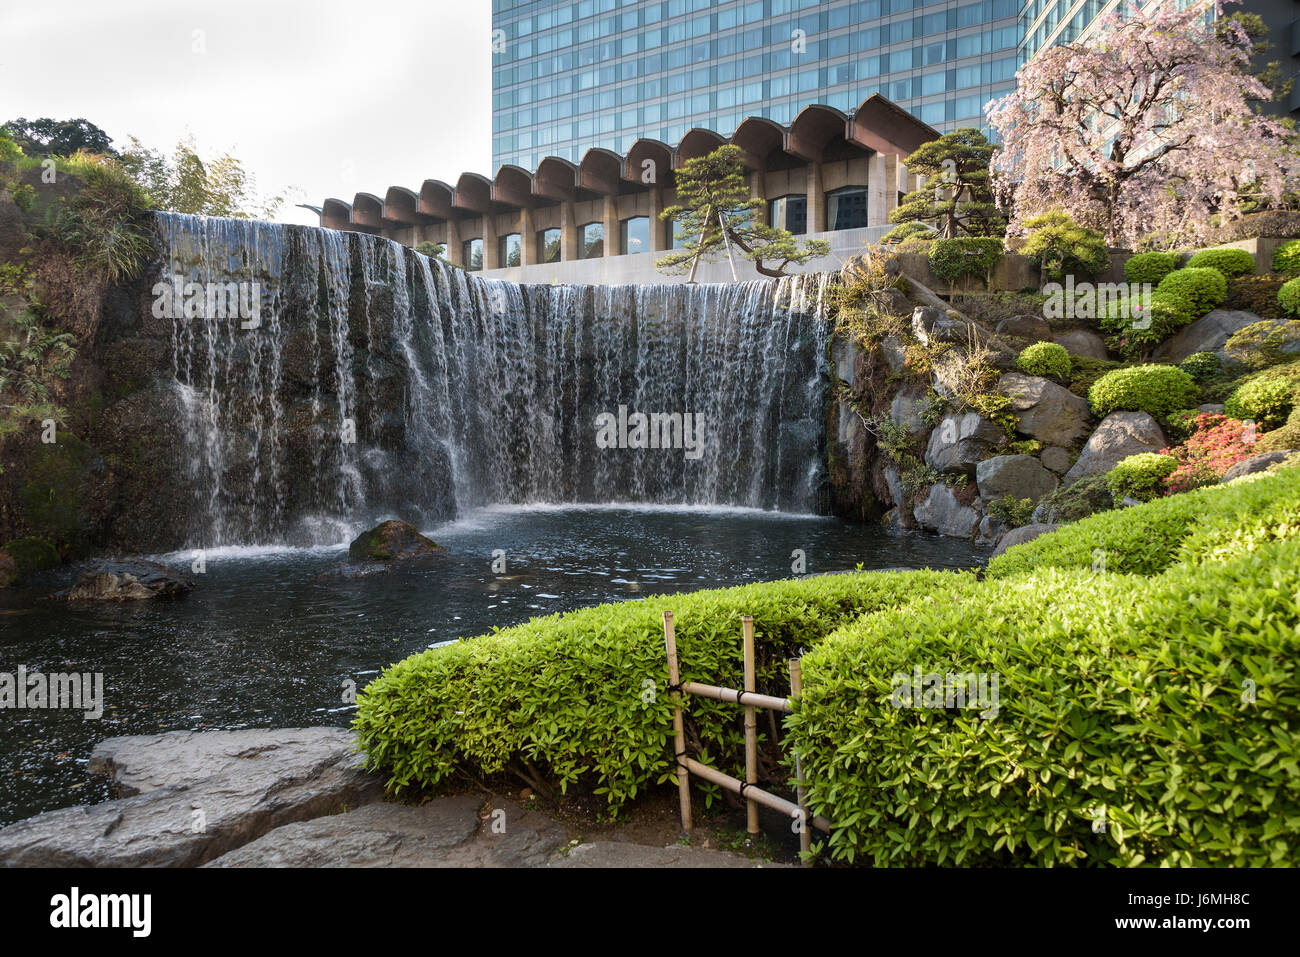 New Otani hotel Japanese gardens.Typical japanese garden in the centre of Tokyo. - Stock Image